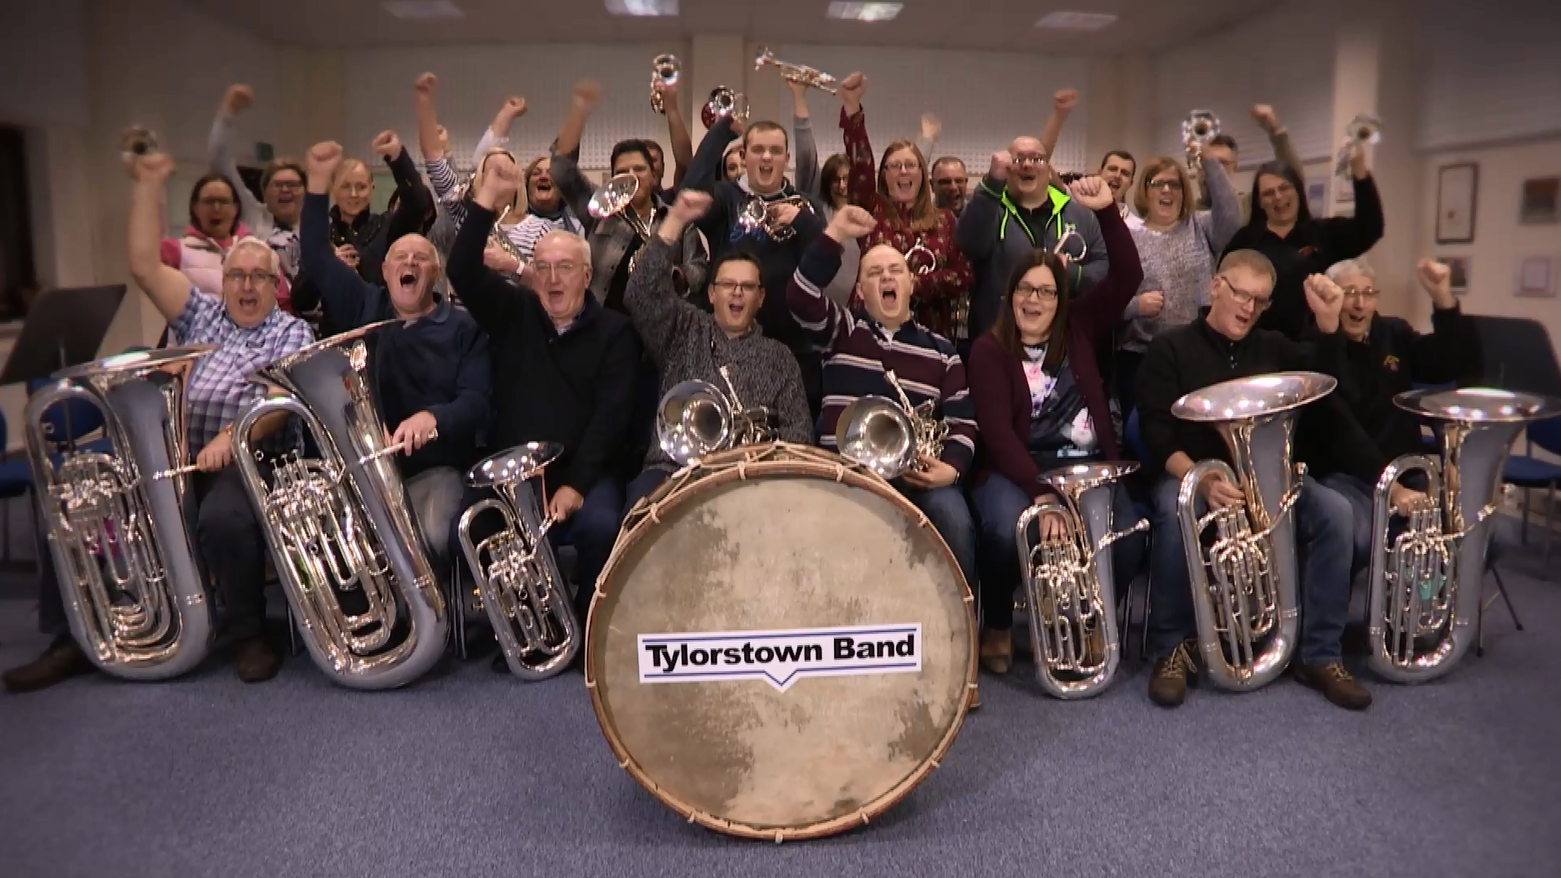 Band Tylorstown